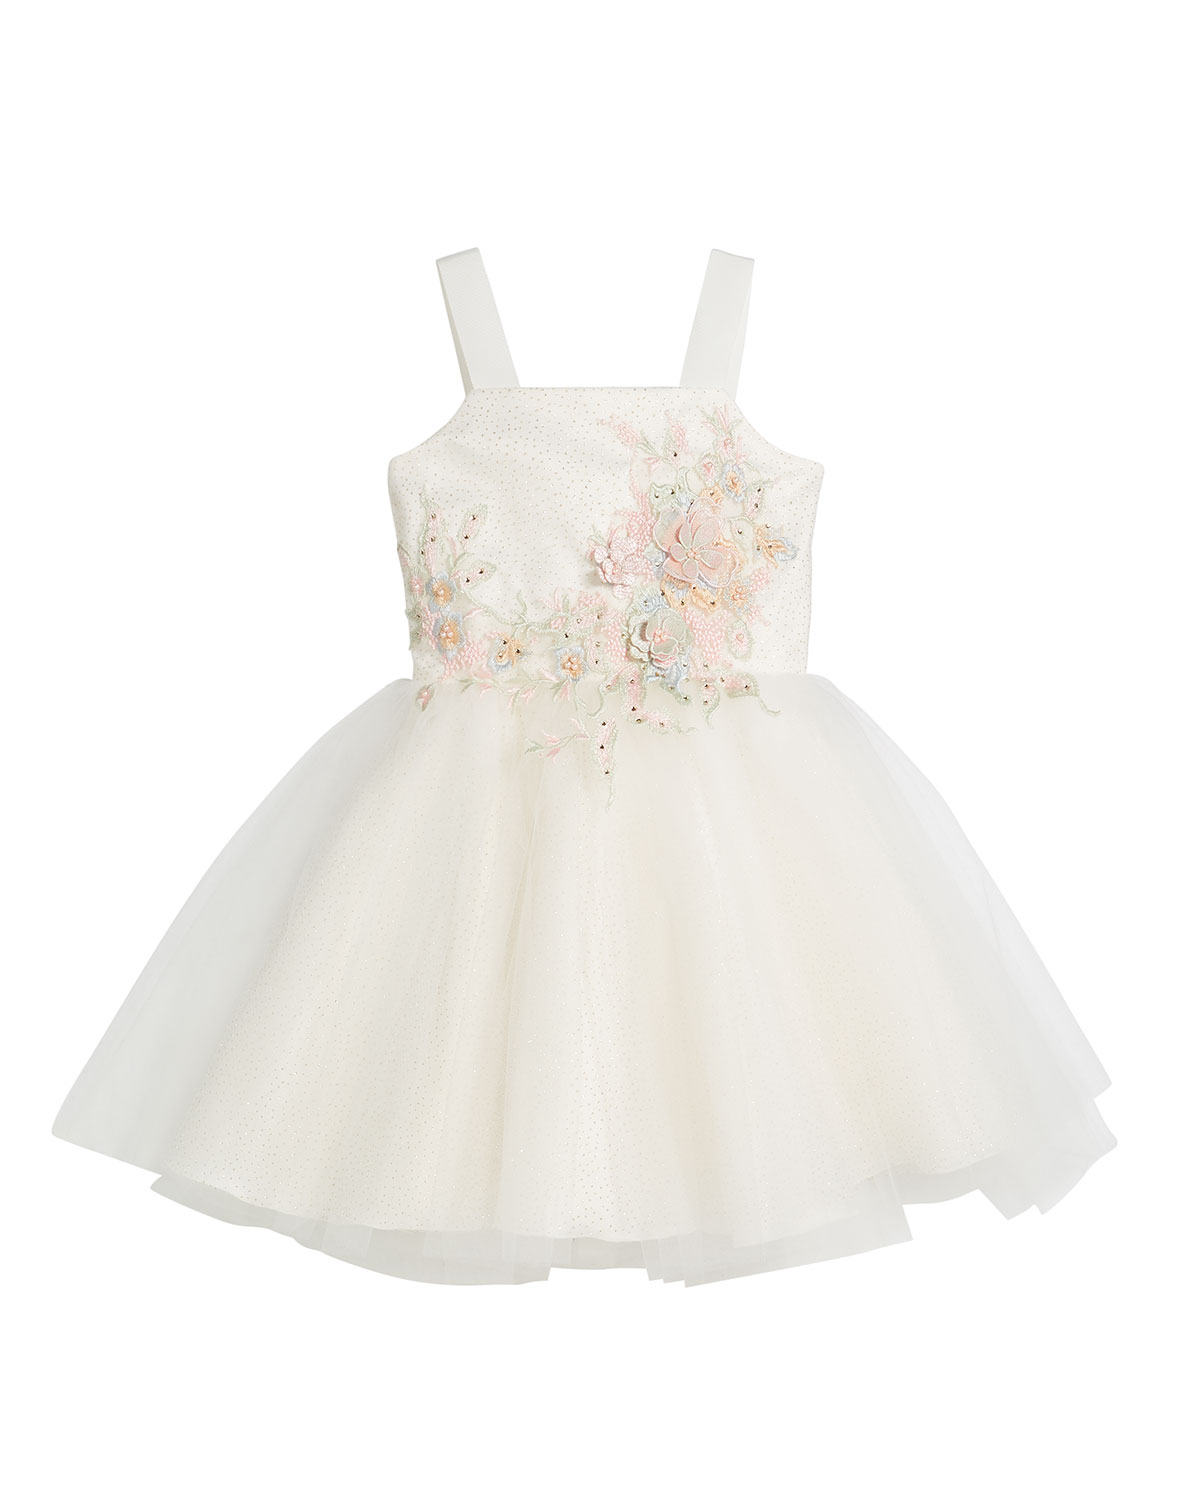 Zoe PAULINA EMBROIDERY & TULLE BALLET BACK DRESS